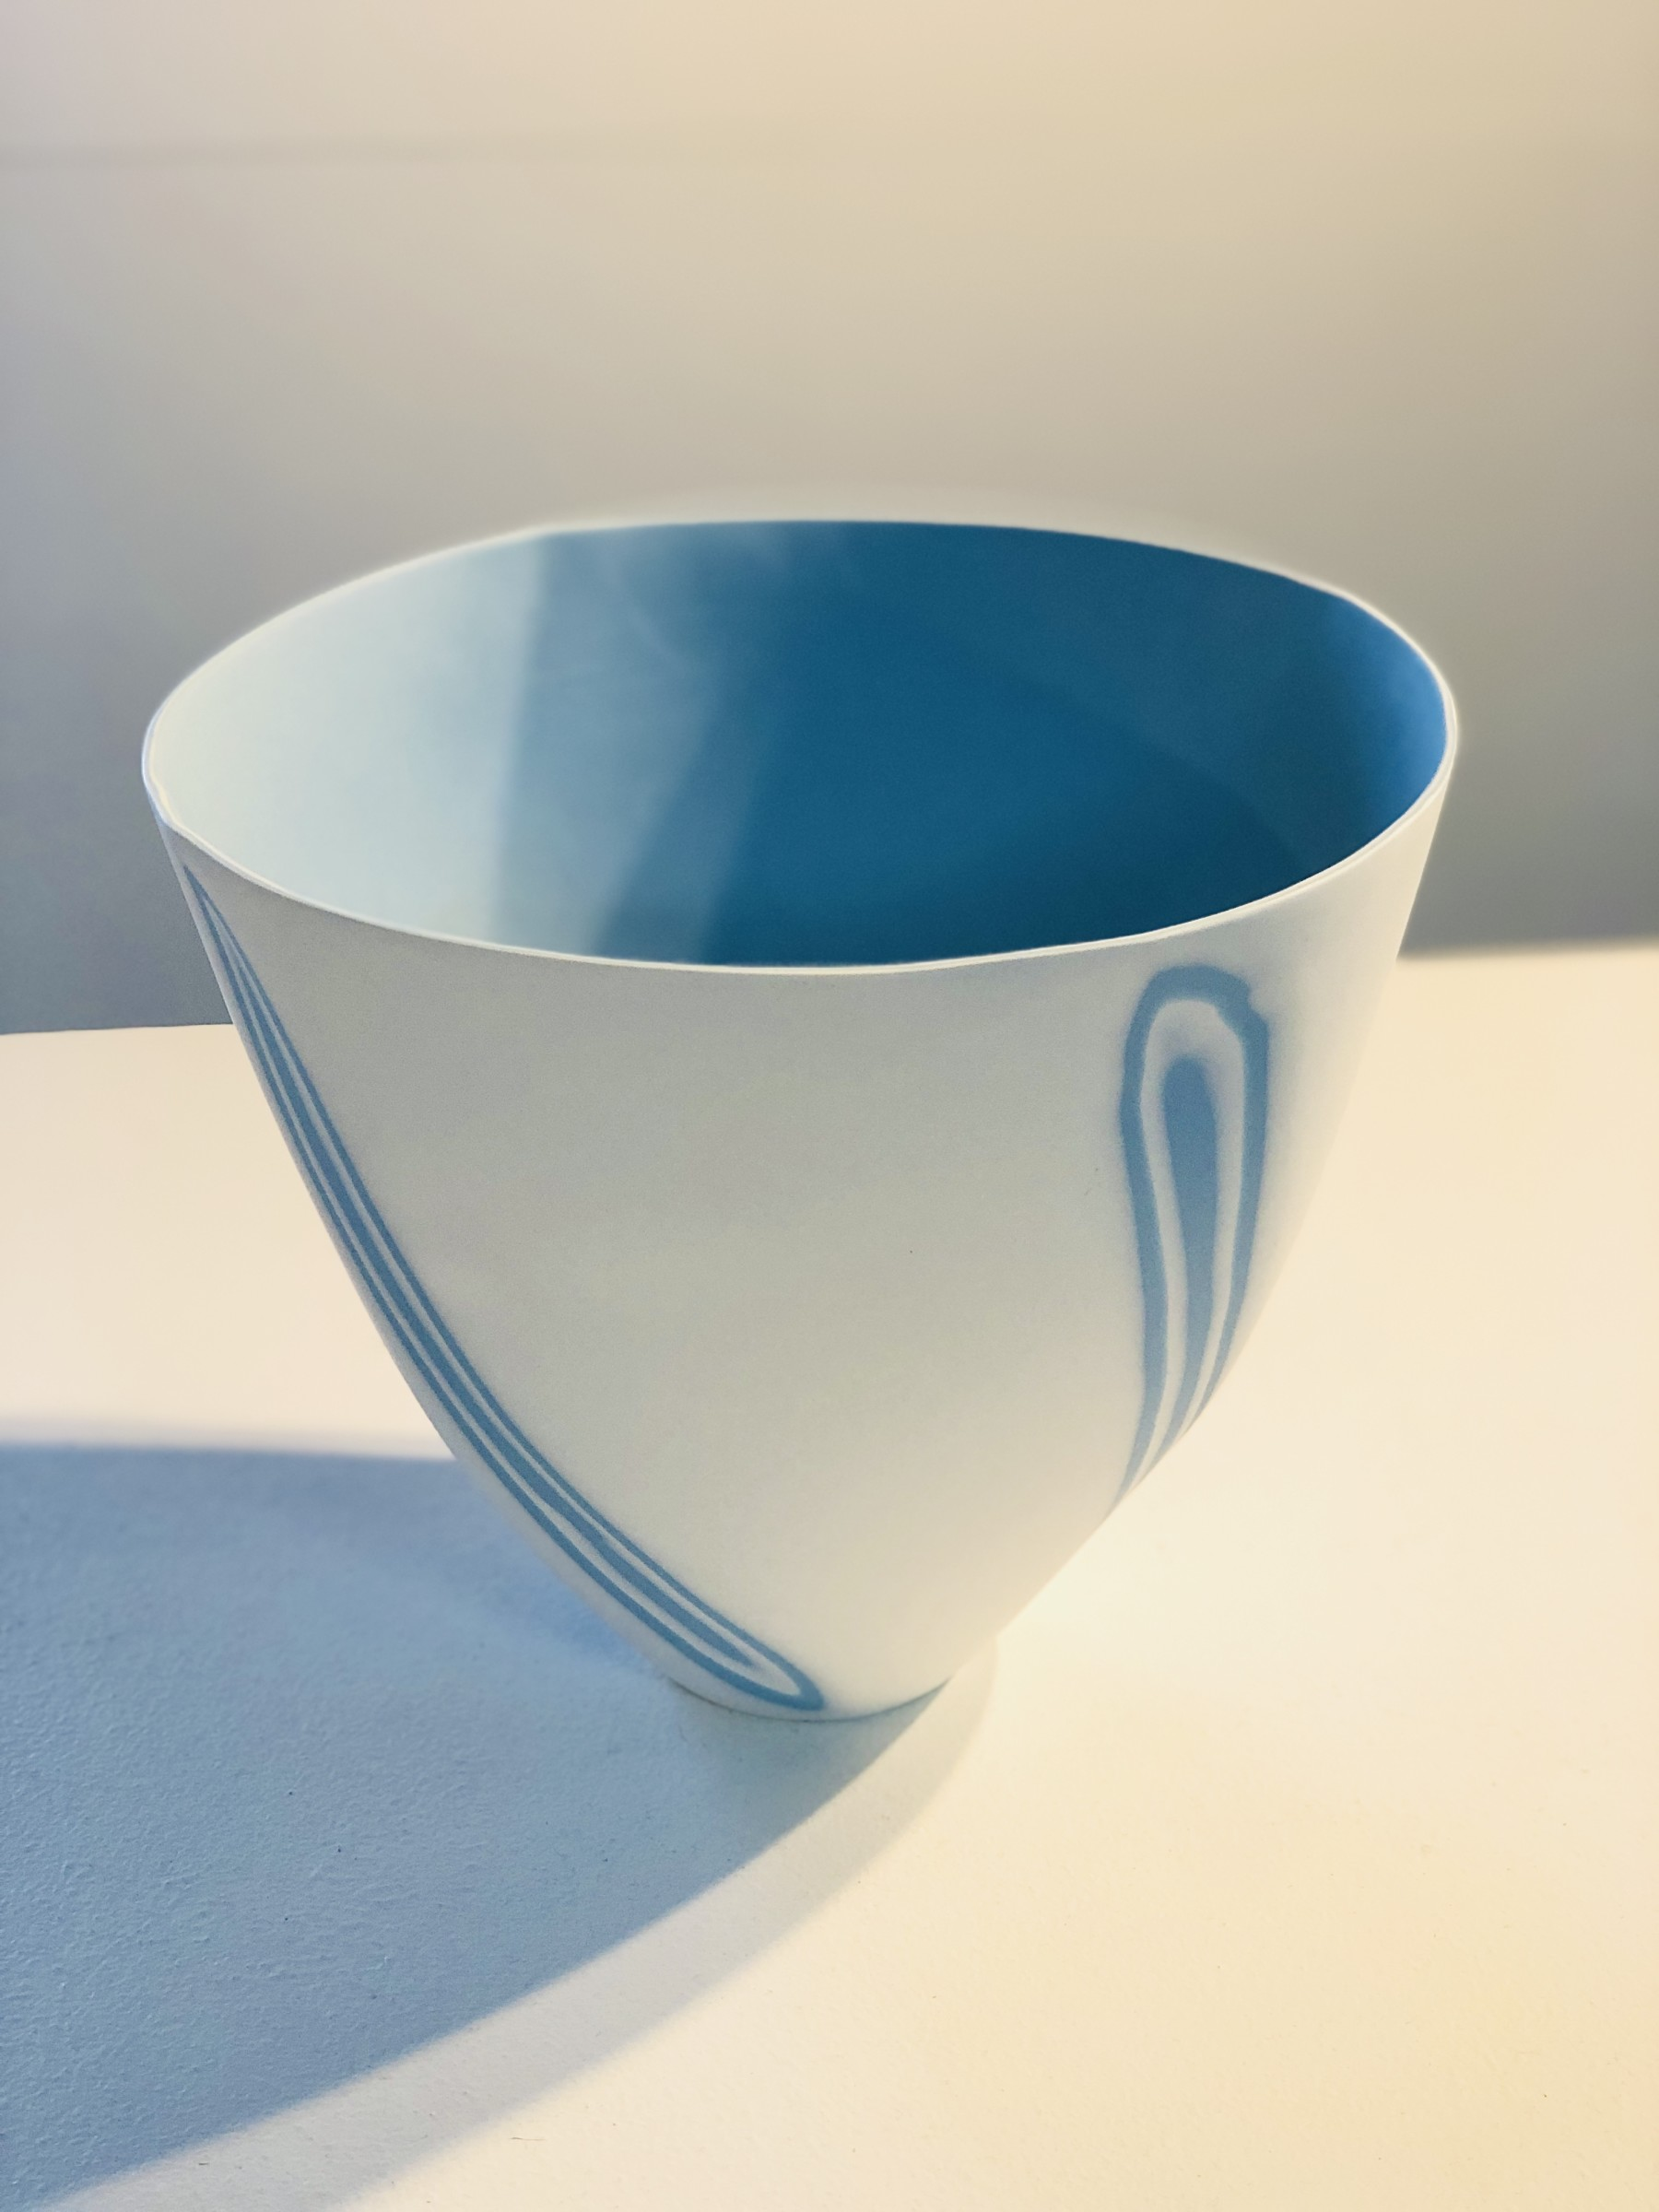 "<span class=""link fancybox-details-link""><a href=""/artists/60-sasha-wardell/works/7059-sasha-wardell-large-twist-bowl-2020/"">View Detail Page</a></span><div class=""artist""><strong>Sasha Wardell</strong></div> <div class=""title""><em>Large Twist Bowl </em>, 2020</div> <div class=""medium"">Layered Porcelain </div><div class=""price"">£500.00</div><div class=""copyright_line"">Ownart: £50 x 10 Months, 0% APR</div>"